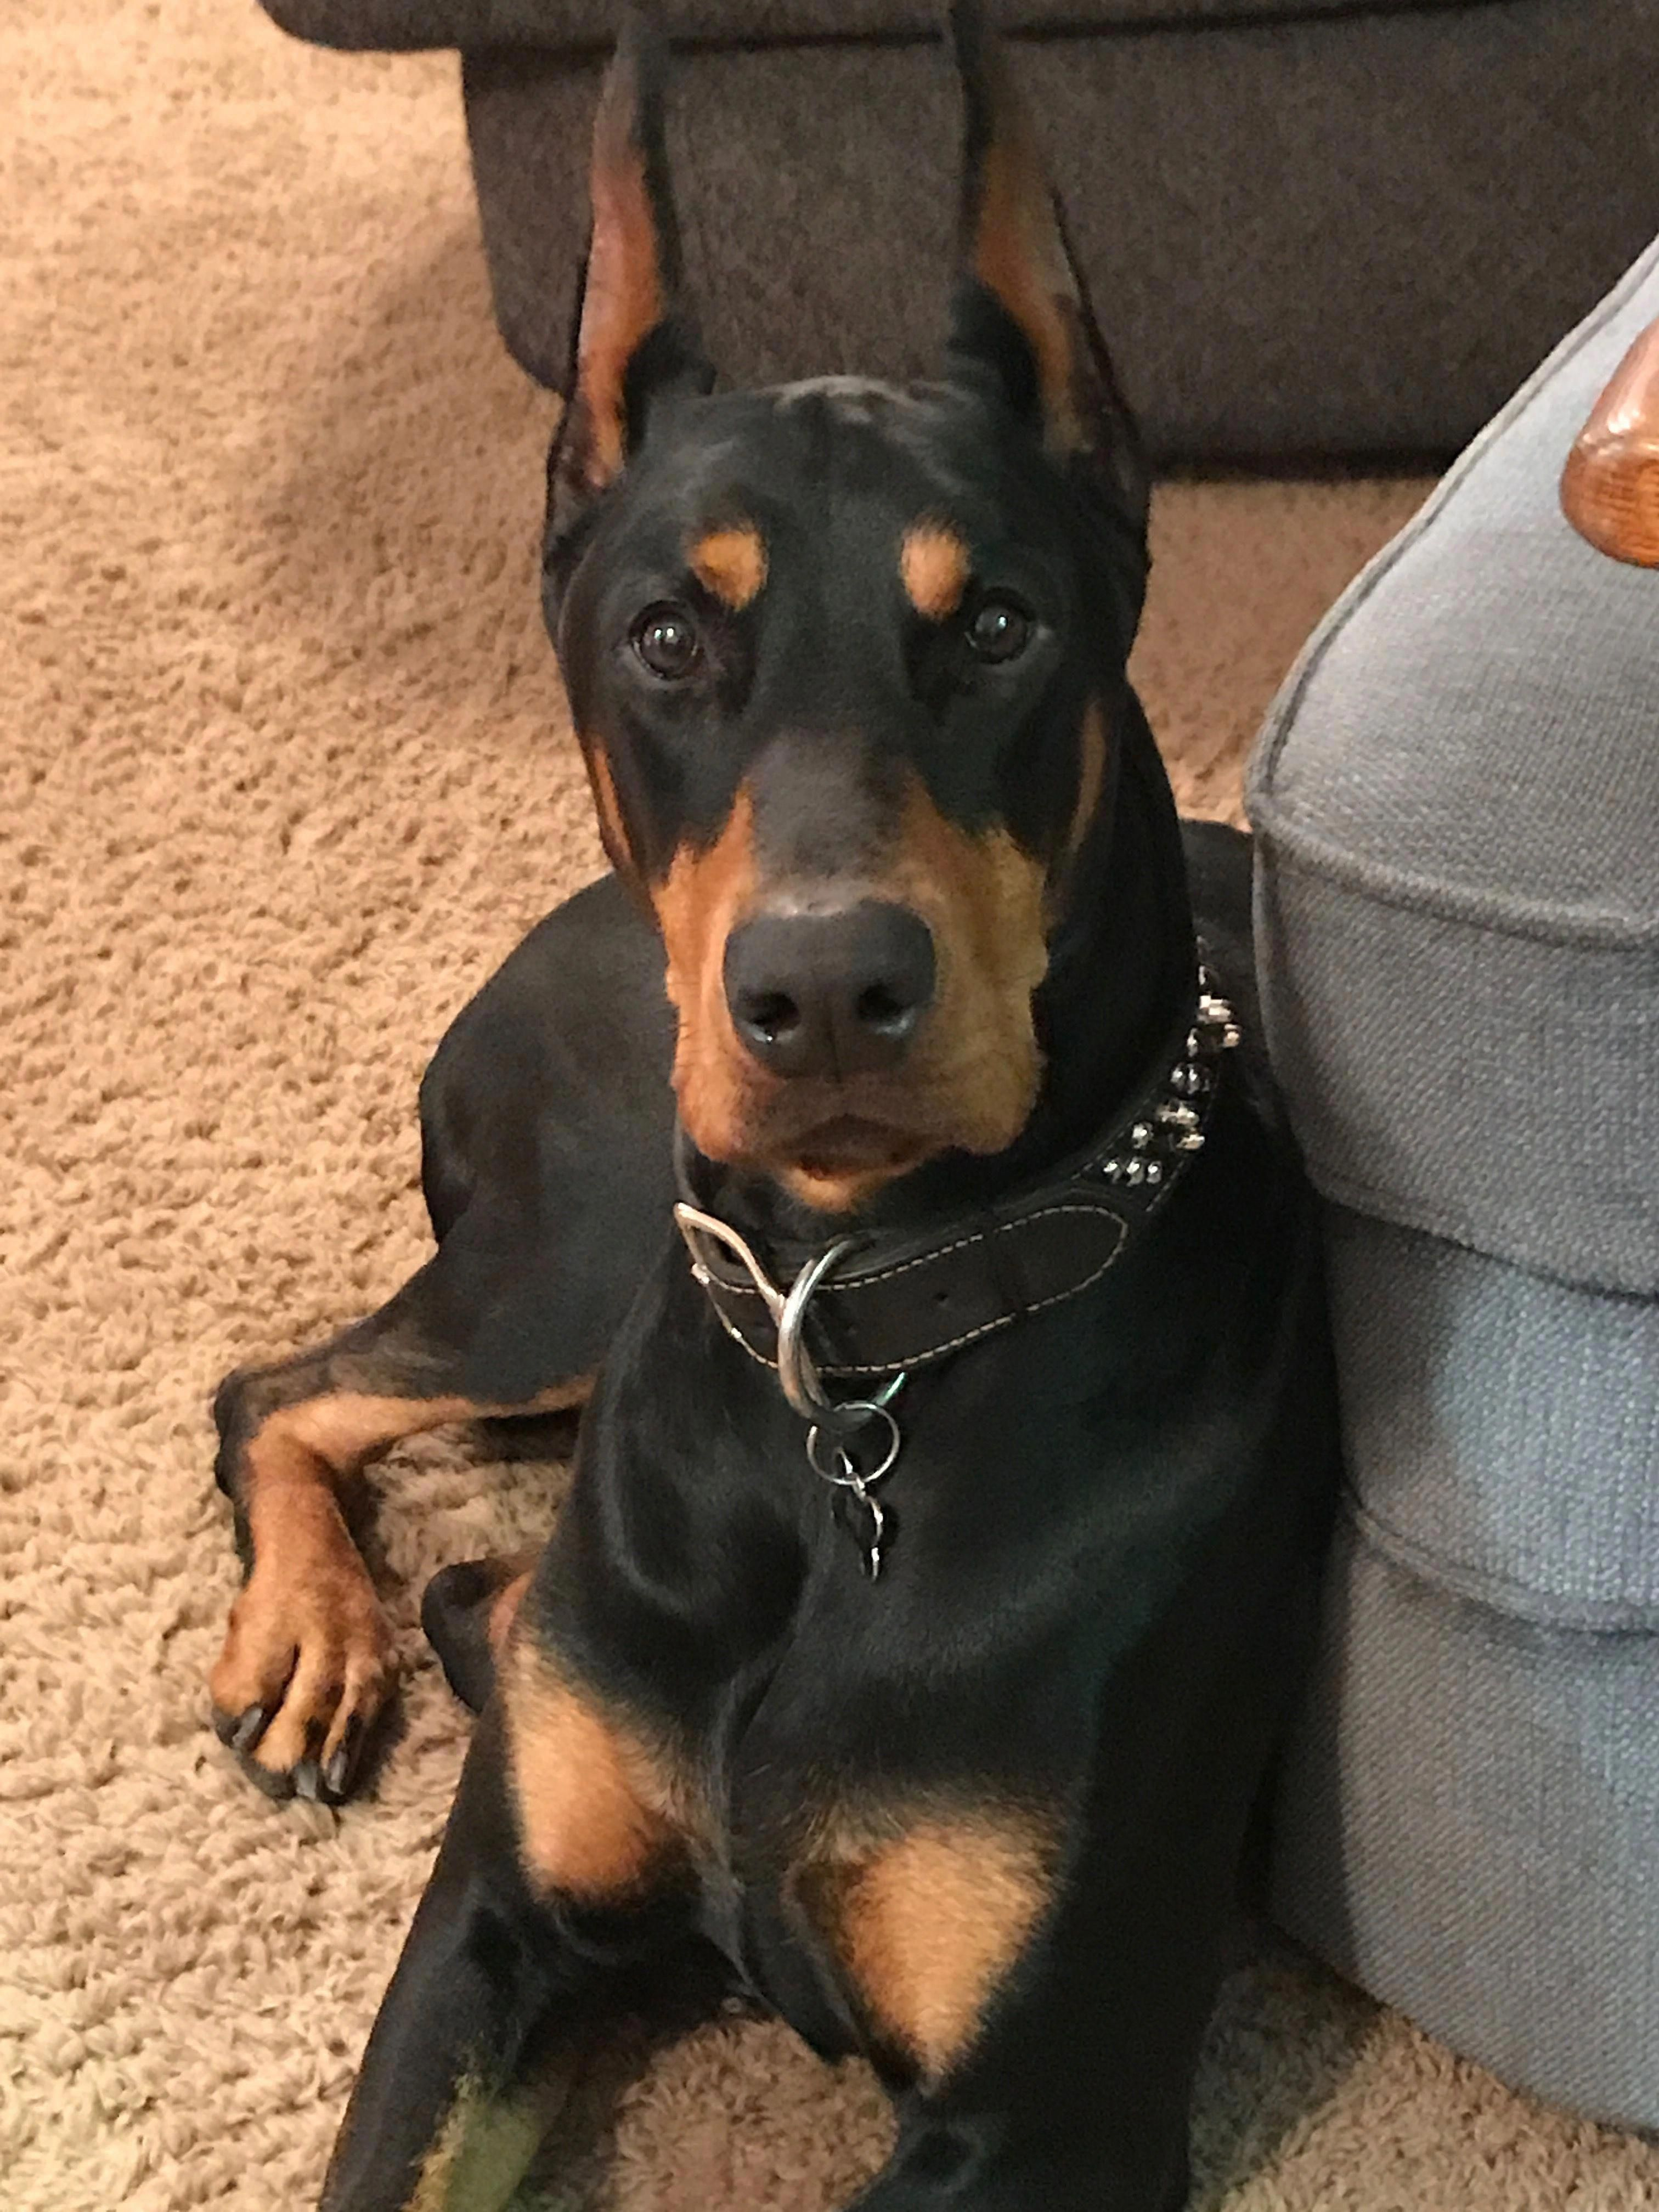 The Energetic Doberman Puppies Temperament Dobermanoftheday Dobermanheart Dobermanpuppy Doberman Dogs Doberman Pinscher Puppy Doberman Pinscher Dog